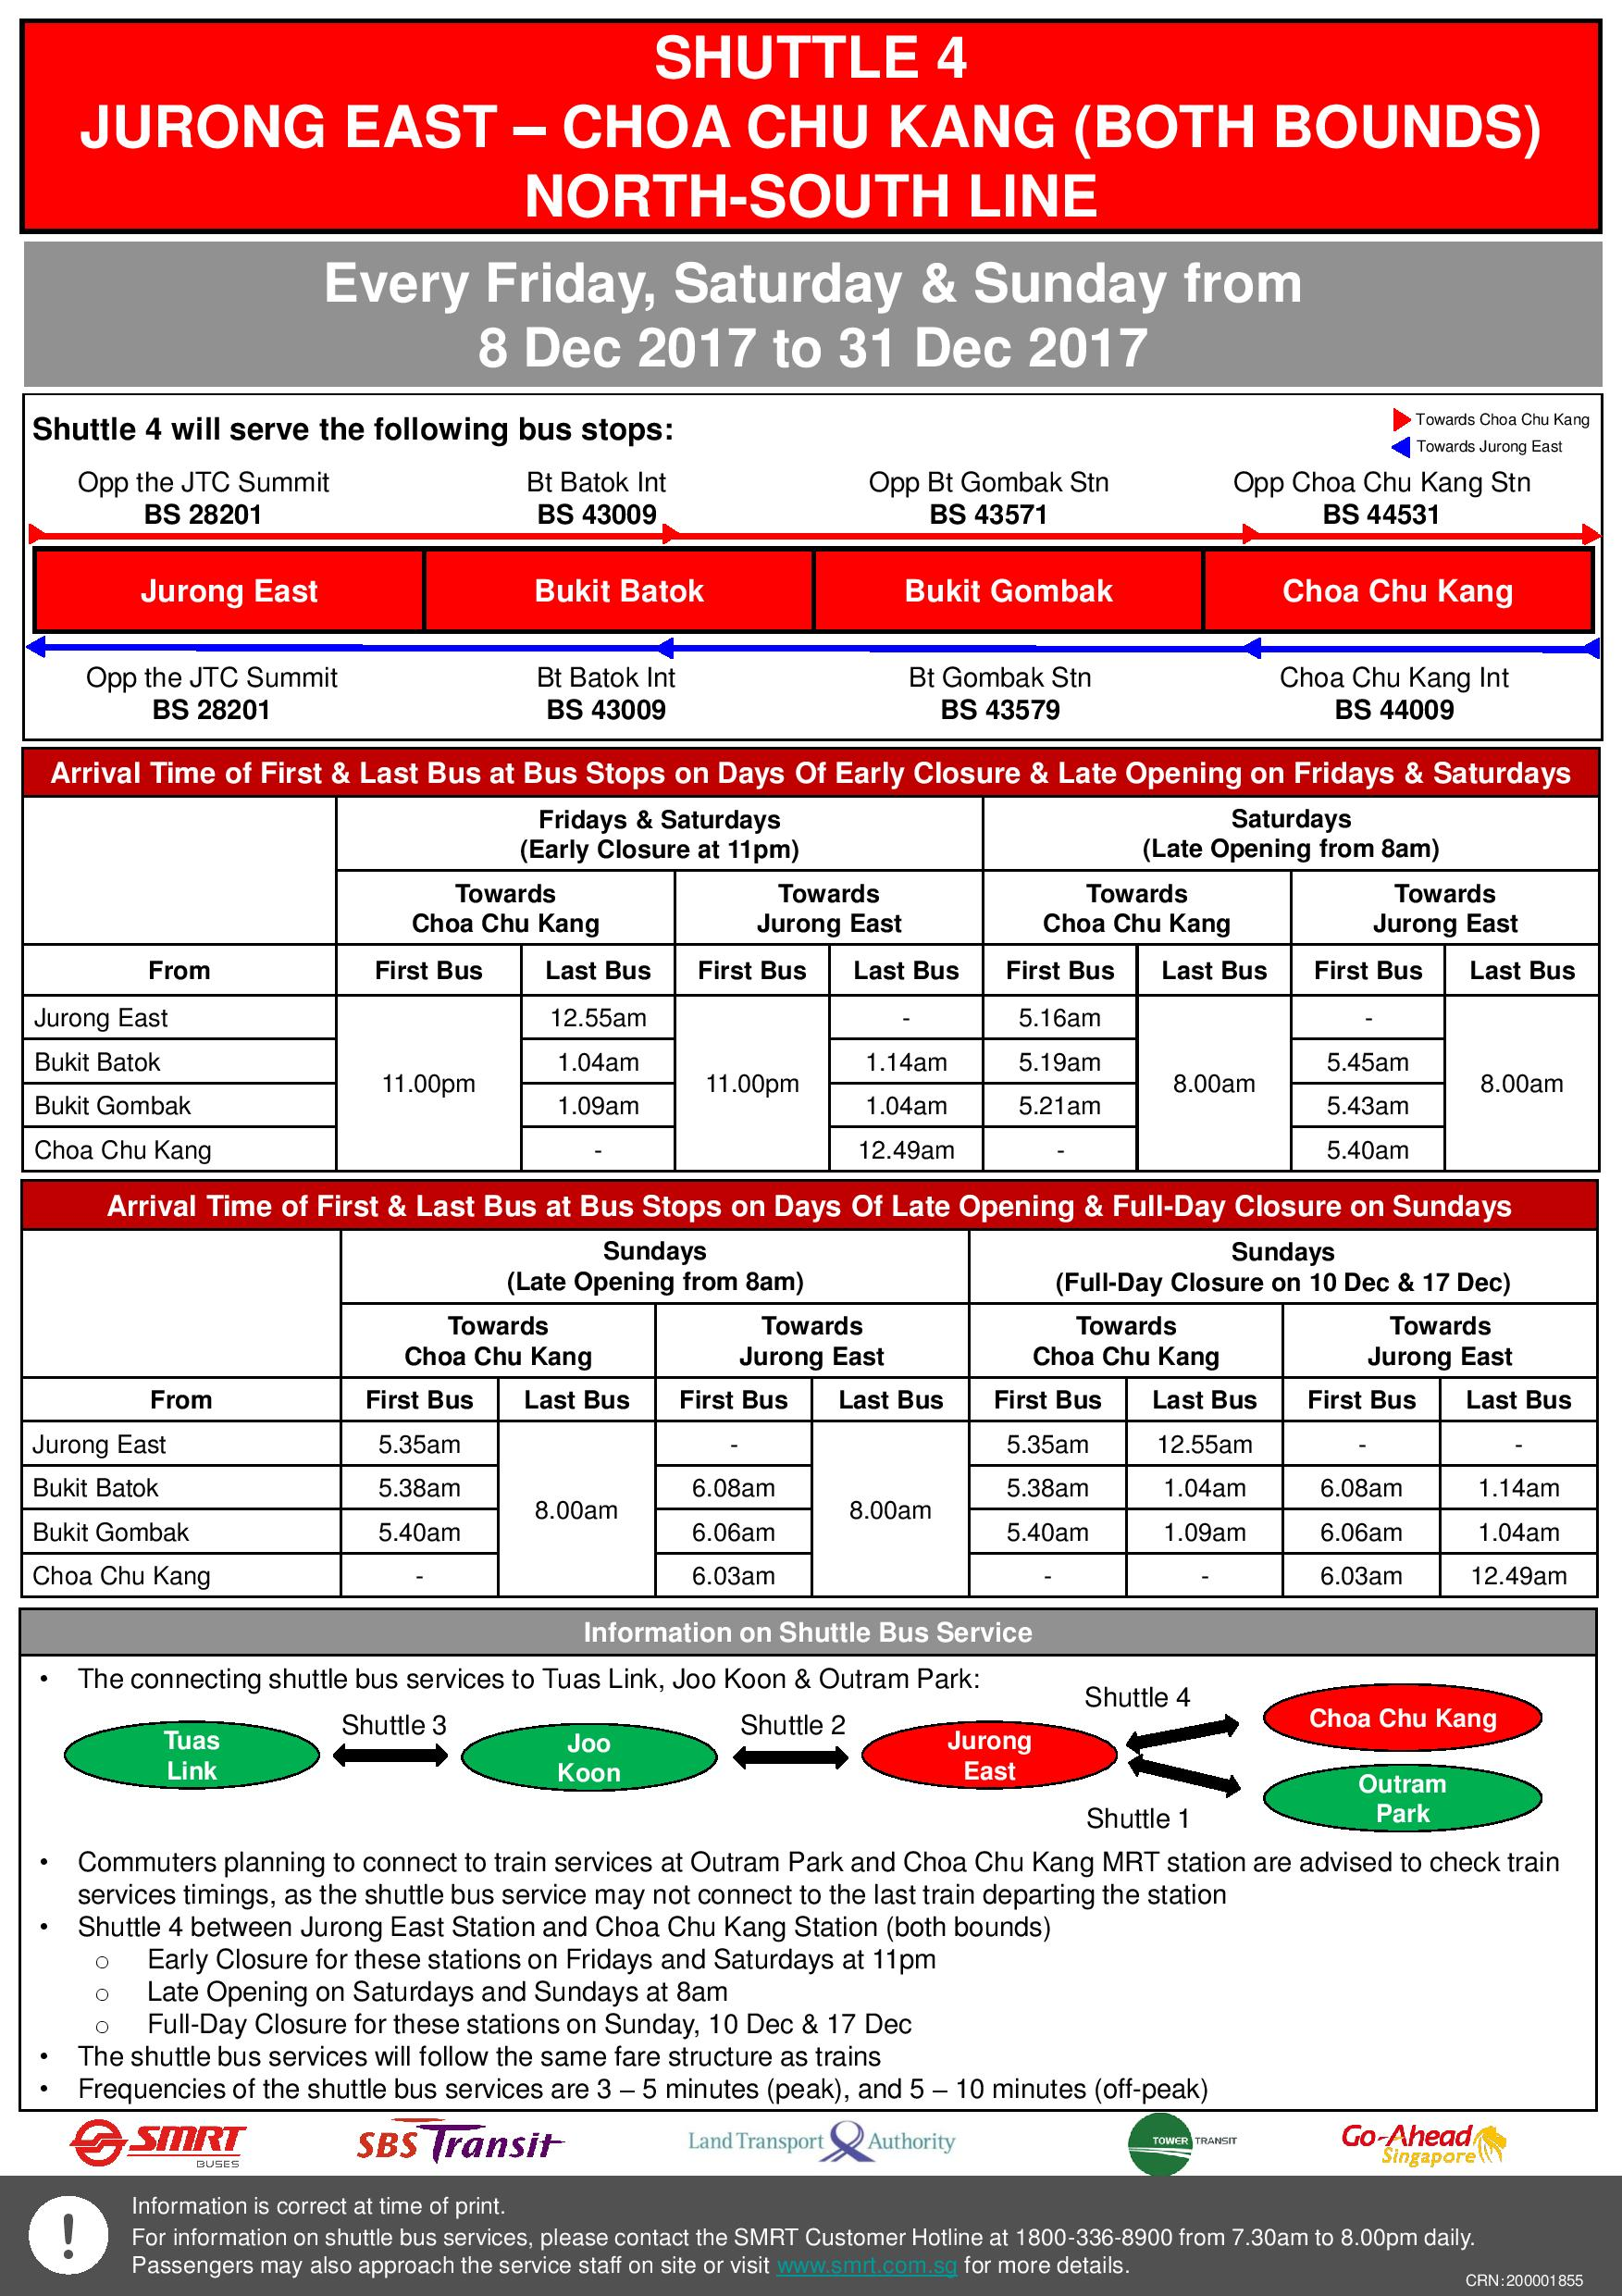 Updated NSEWL Early Closure / Late Opening Dec 2017 - Jurong East - Choa Chu Kang Shuttle (Shuttle 4)